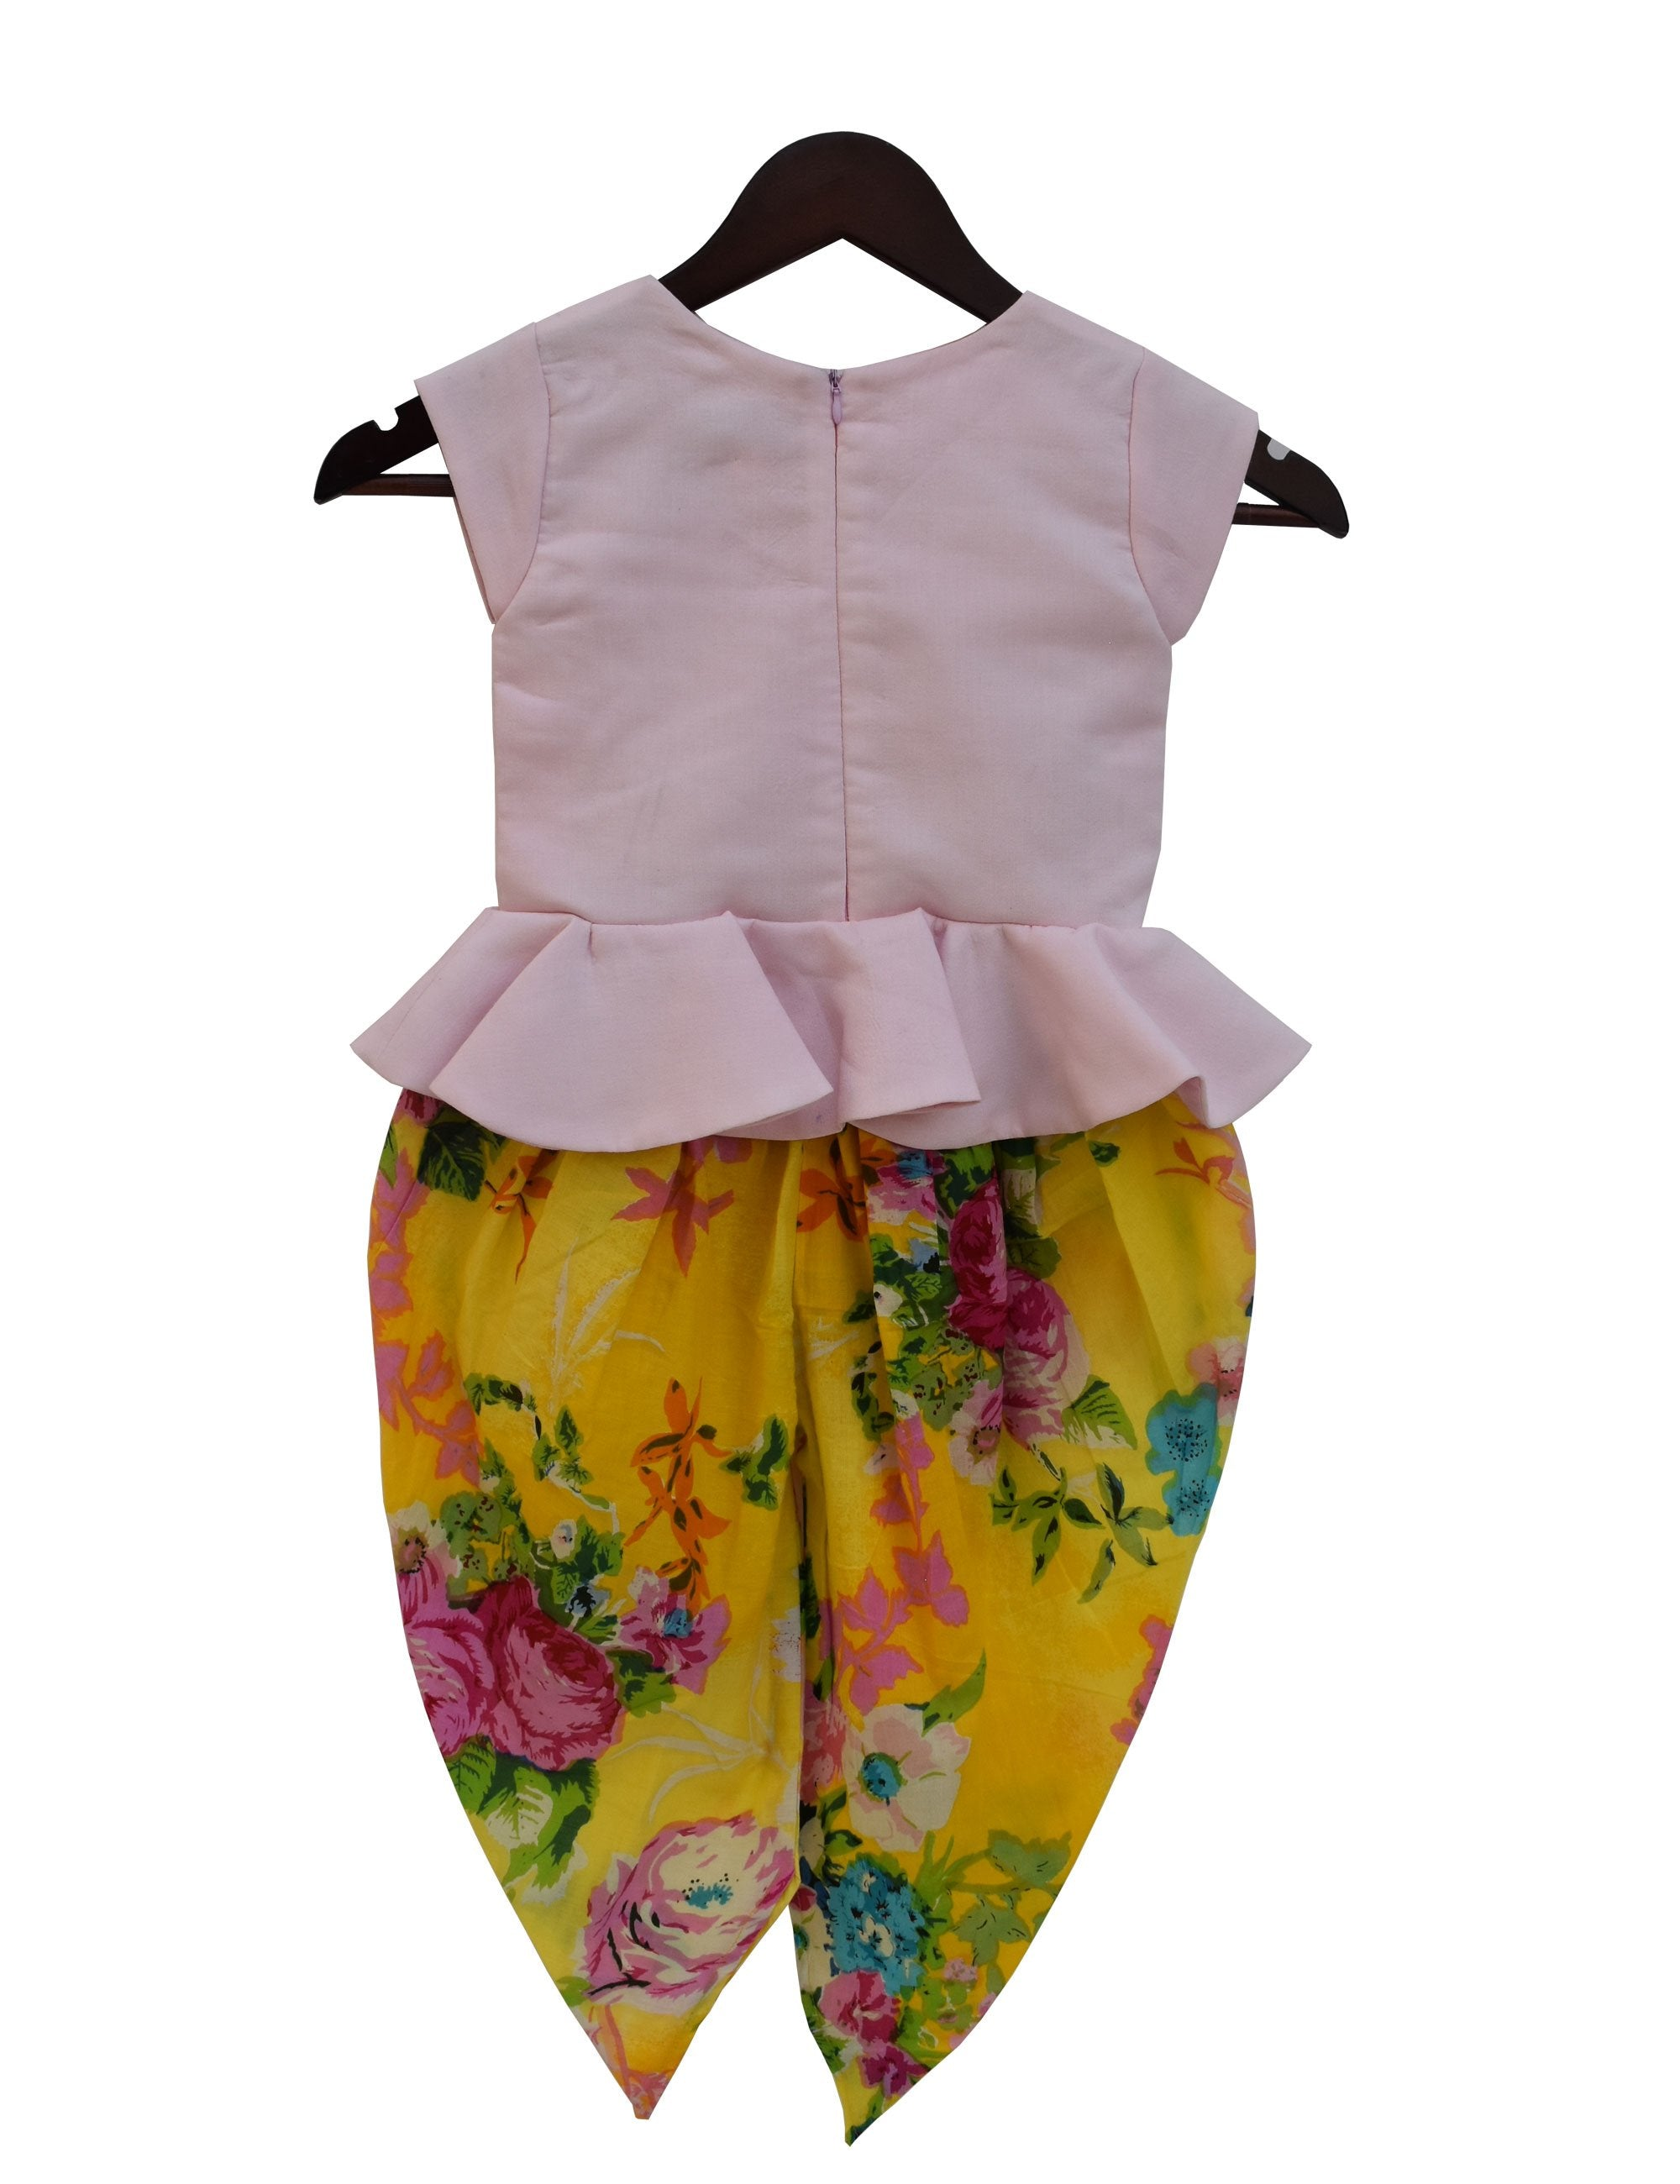 Choli with Dhoti in Yellow and Pink Colour for Girls